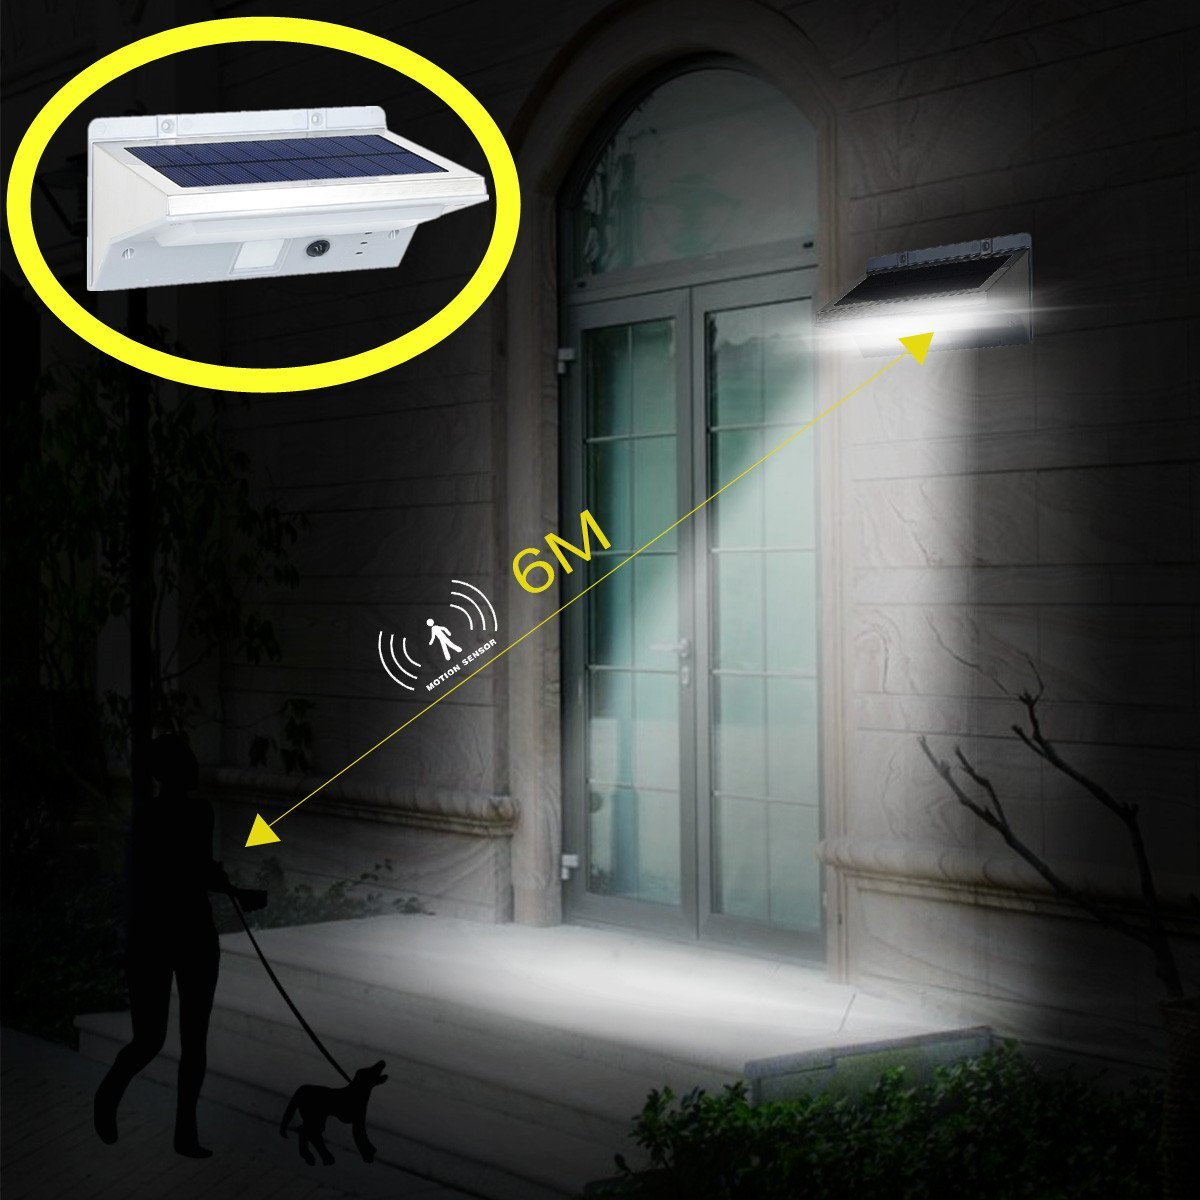 HowFine 21 LED Outdoor Solar Motion Sensor Light, Waterproof Wireless Stainless Steel Security LED light For Patio, Deck, Yard, Garden, Home, Driveway, Stair, Wall - 200 Lumens Max Super Bright [並行輸入品] B06XVR7PXQ 14476